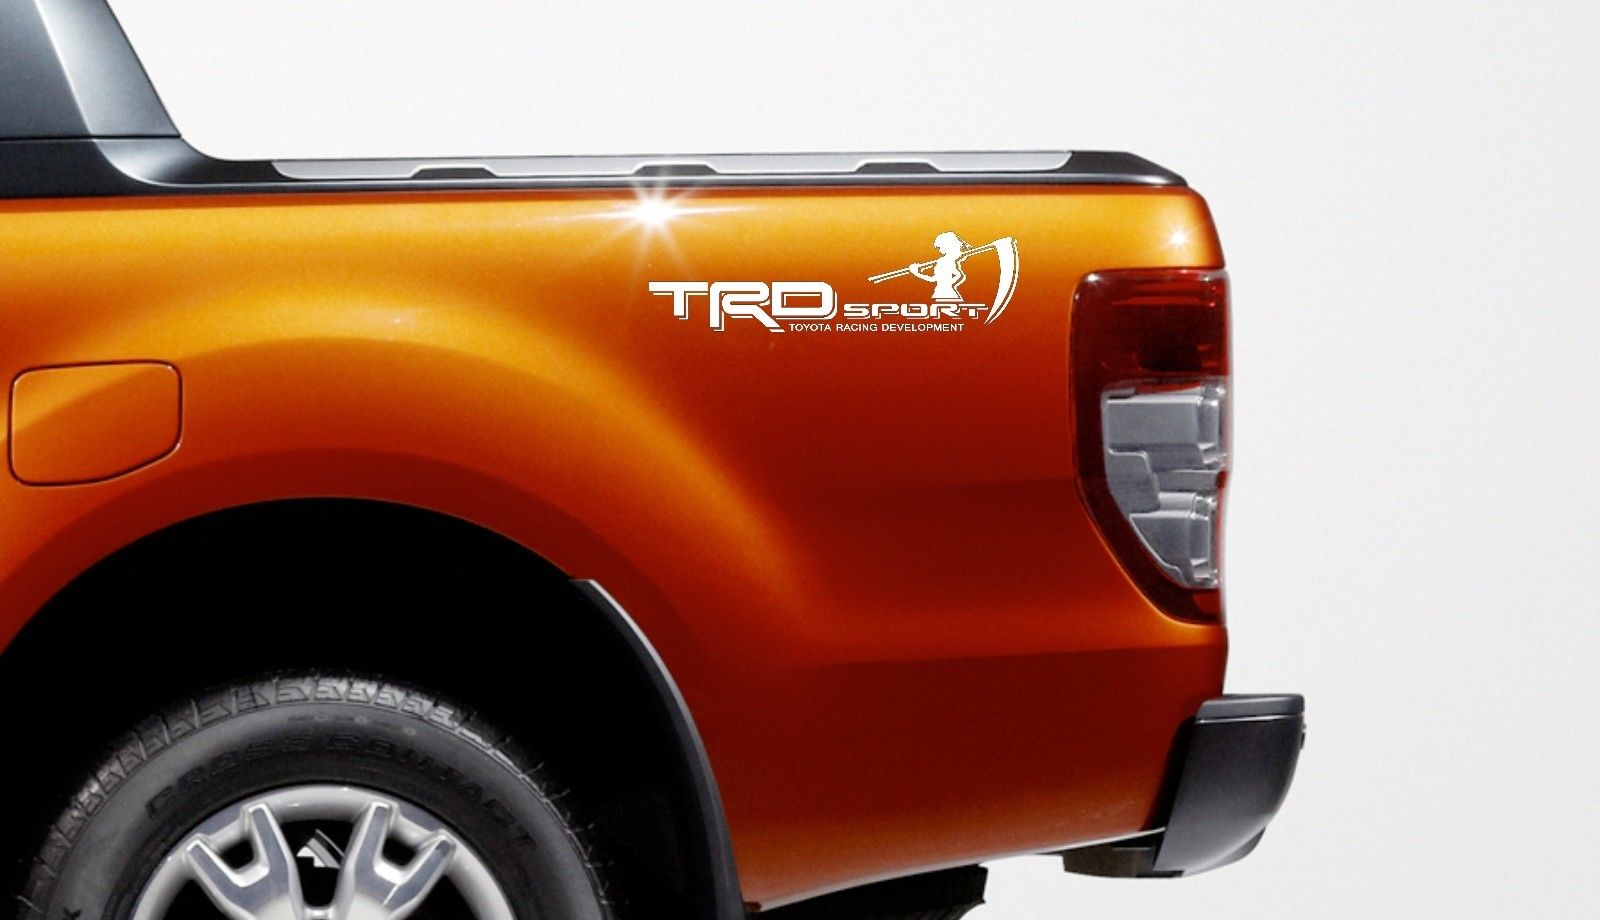 Car styling for 2x trd sport toyota body vinyl decal stickers sport racing emblem logo